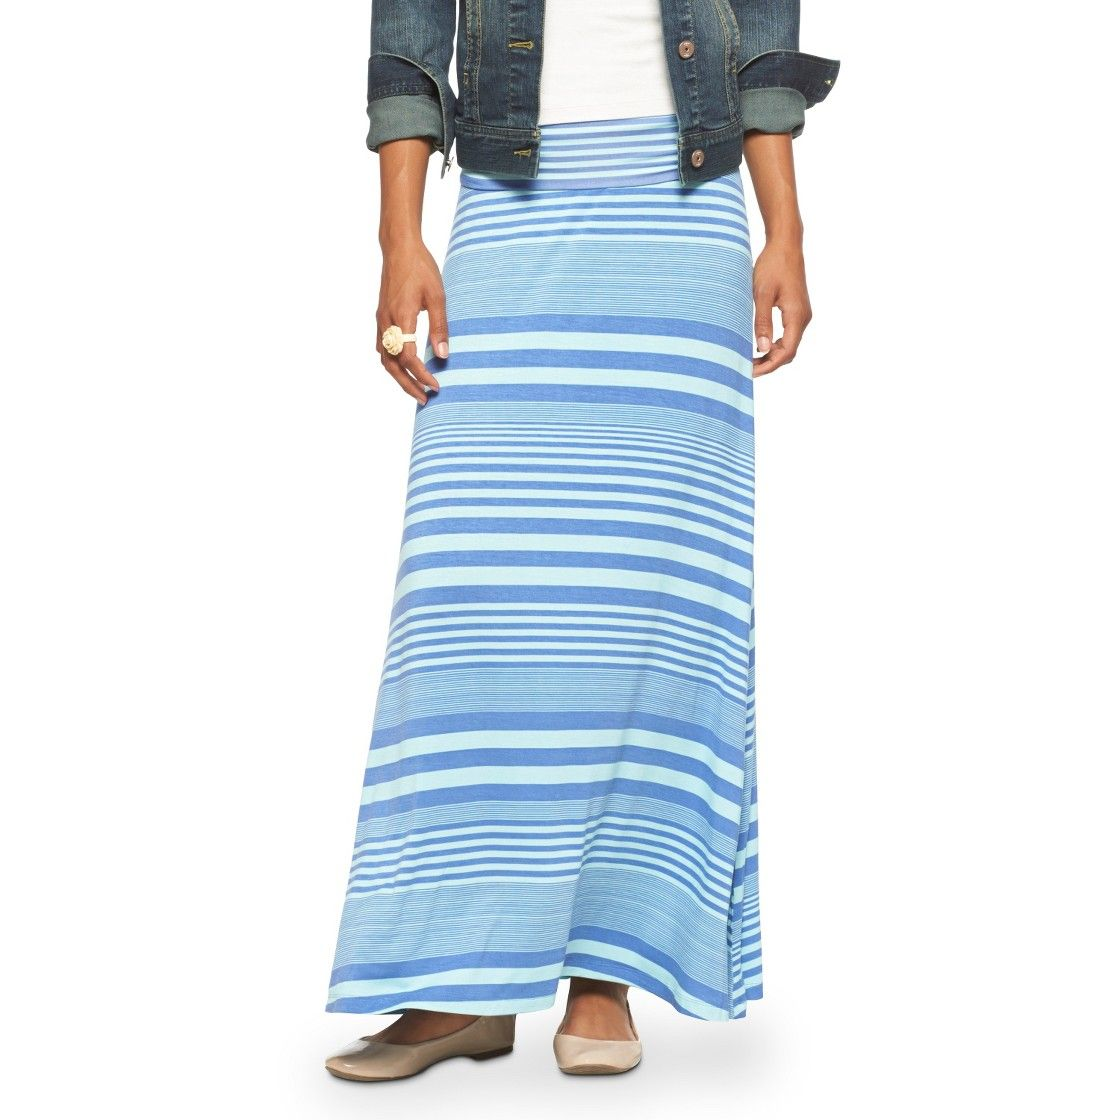 Knit Maxi Skirt - Mossimo Supply Co.